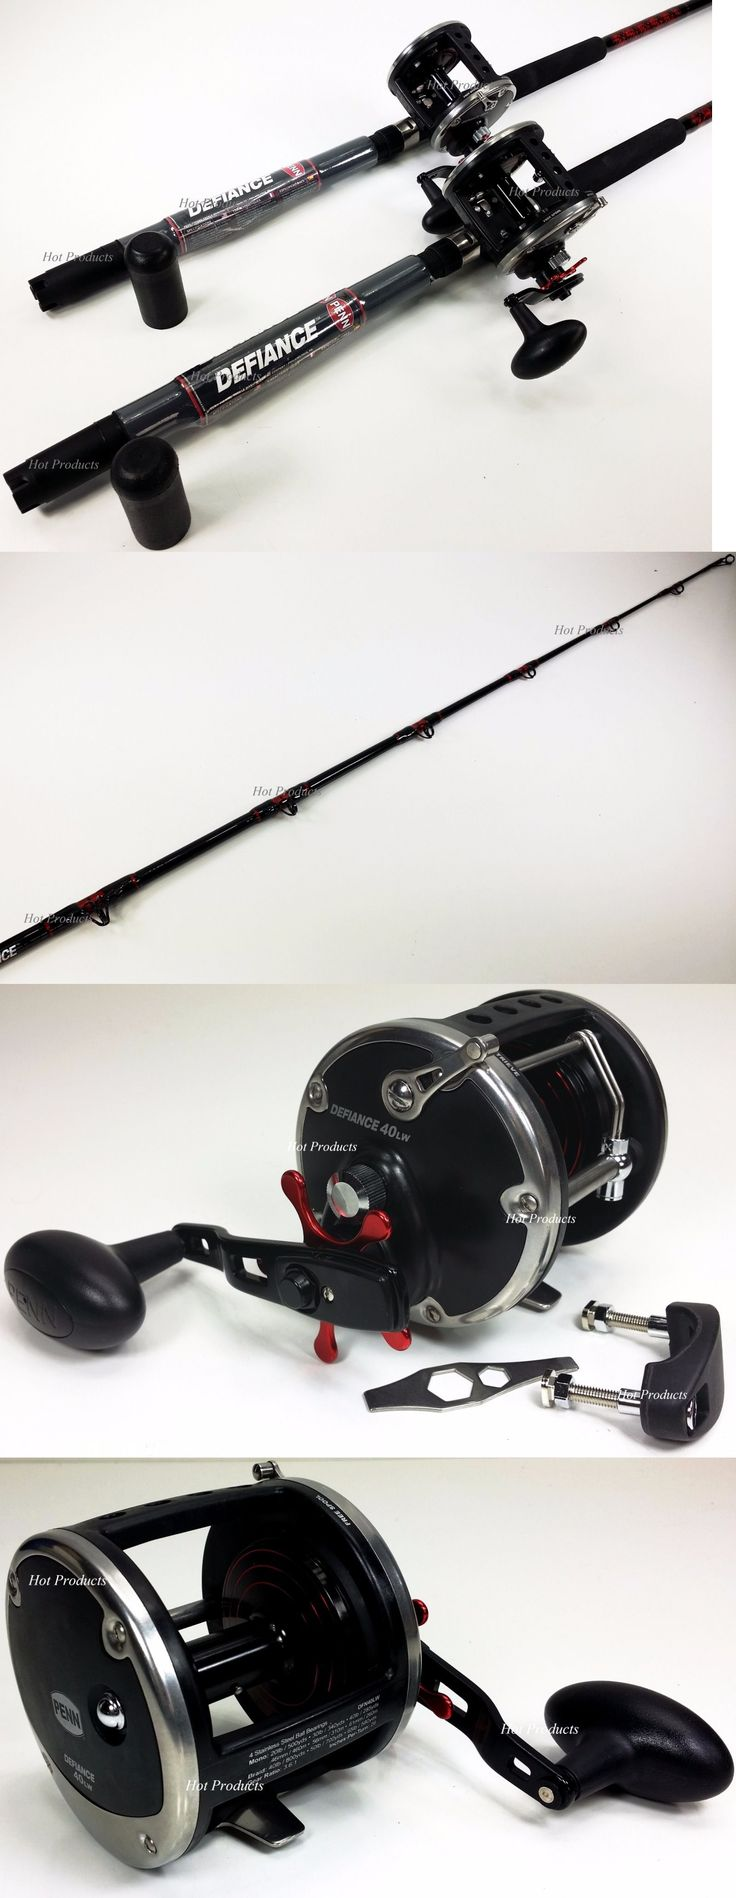 Saltwater Combos 179959: Qty 2 Penn Defiance 66 30-50 Boat Rod 40Lw Conventional Levelwind Fishing Reel -> BUY IT NOW ONLY: $230.0 on eBay!